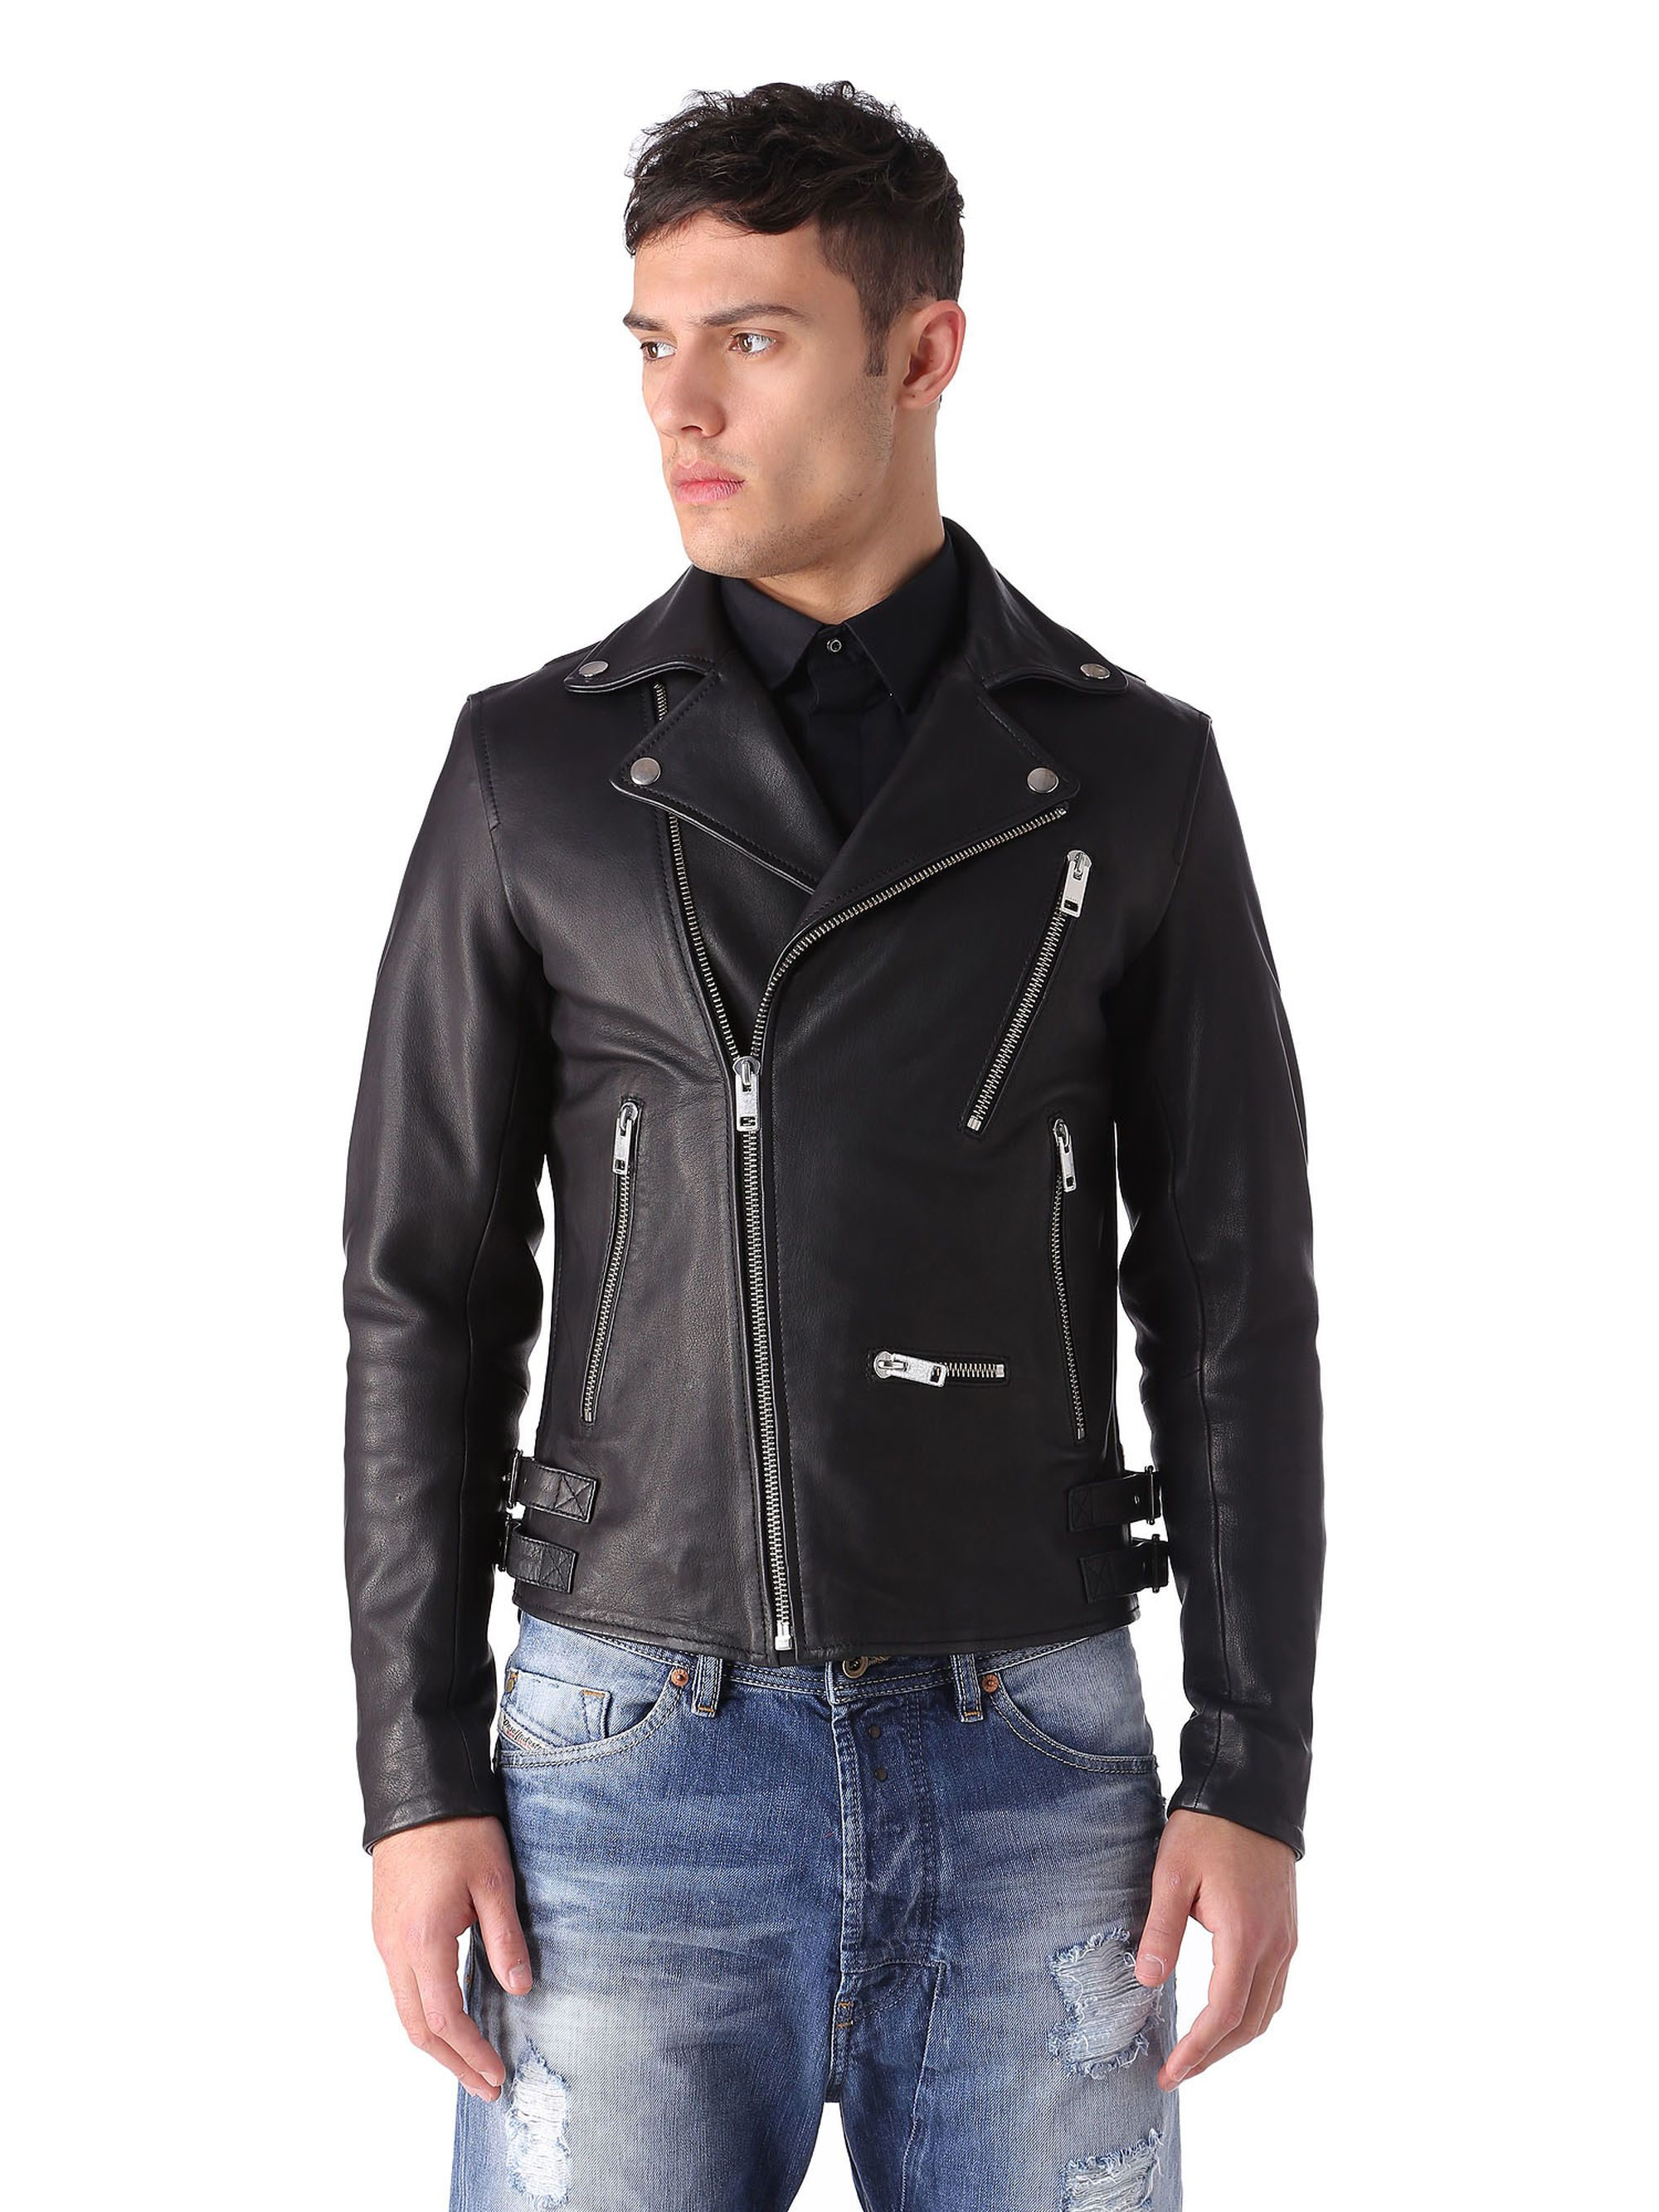 Diesel L-GIBSON-1 Leather Jacket in Black Color from Diesel Online Store #